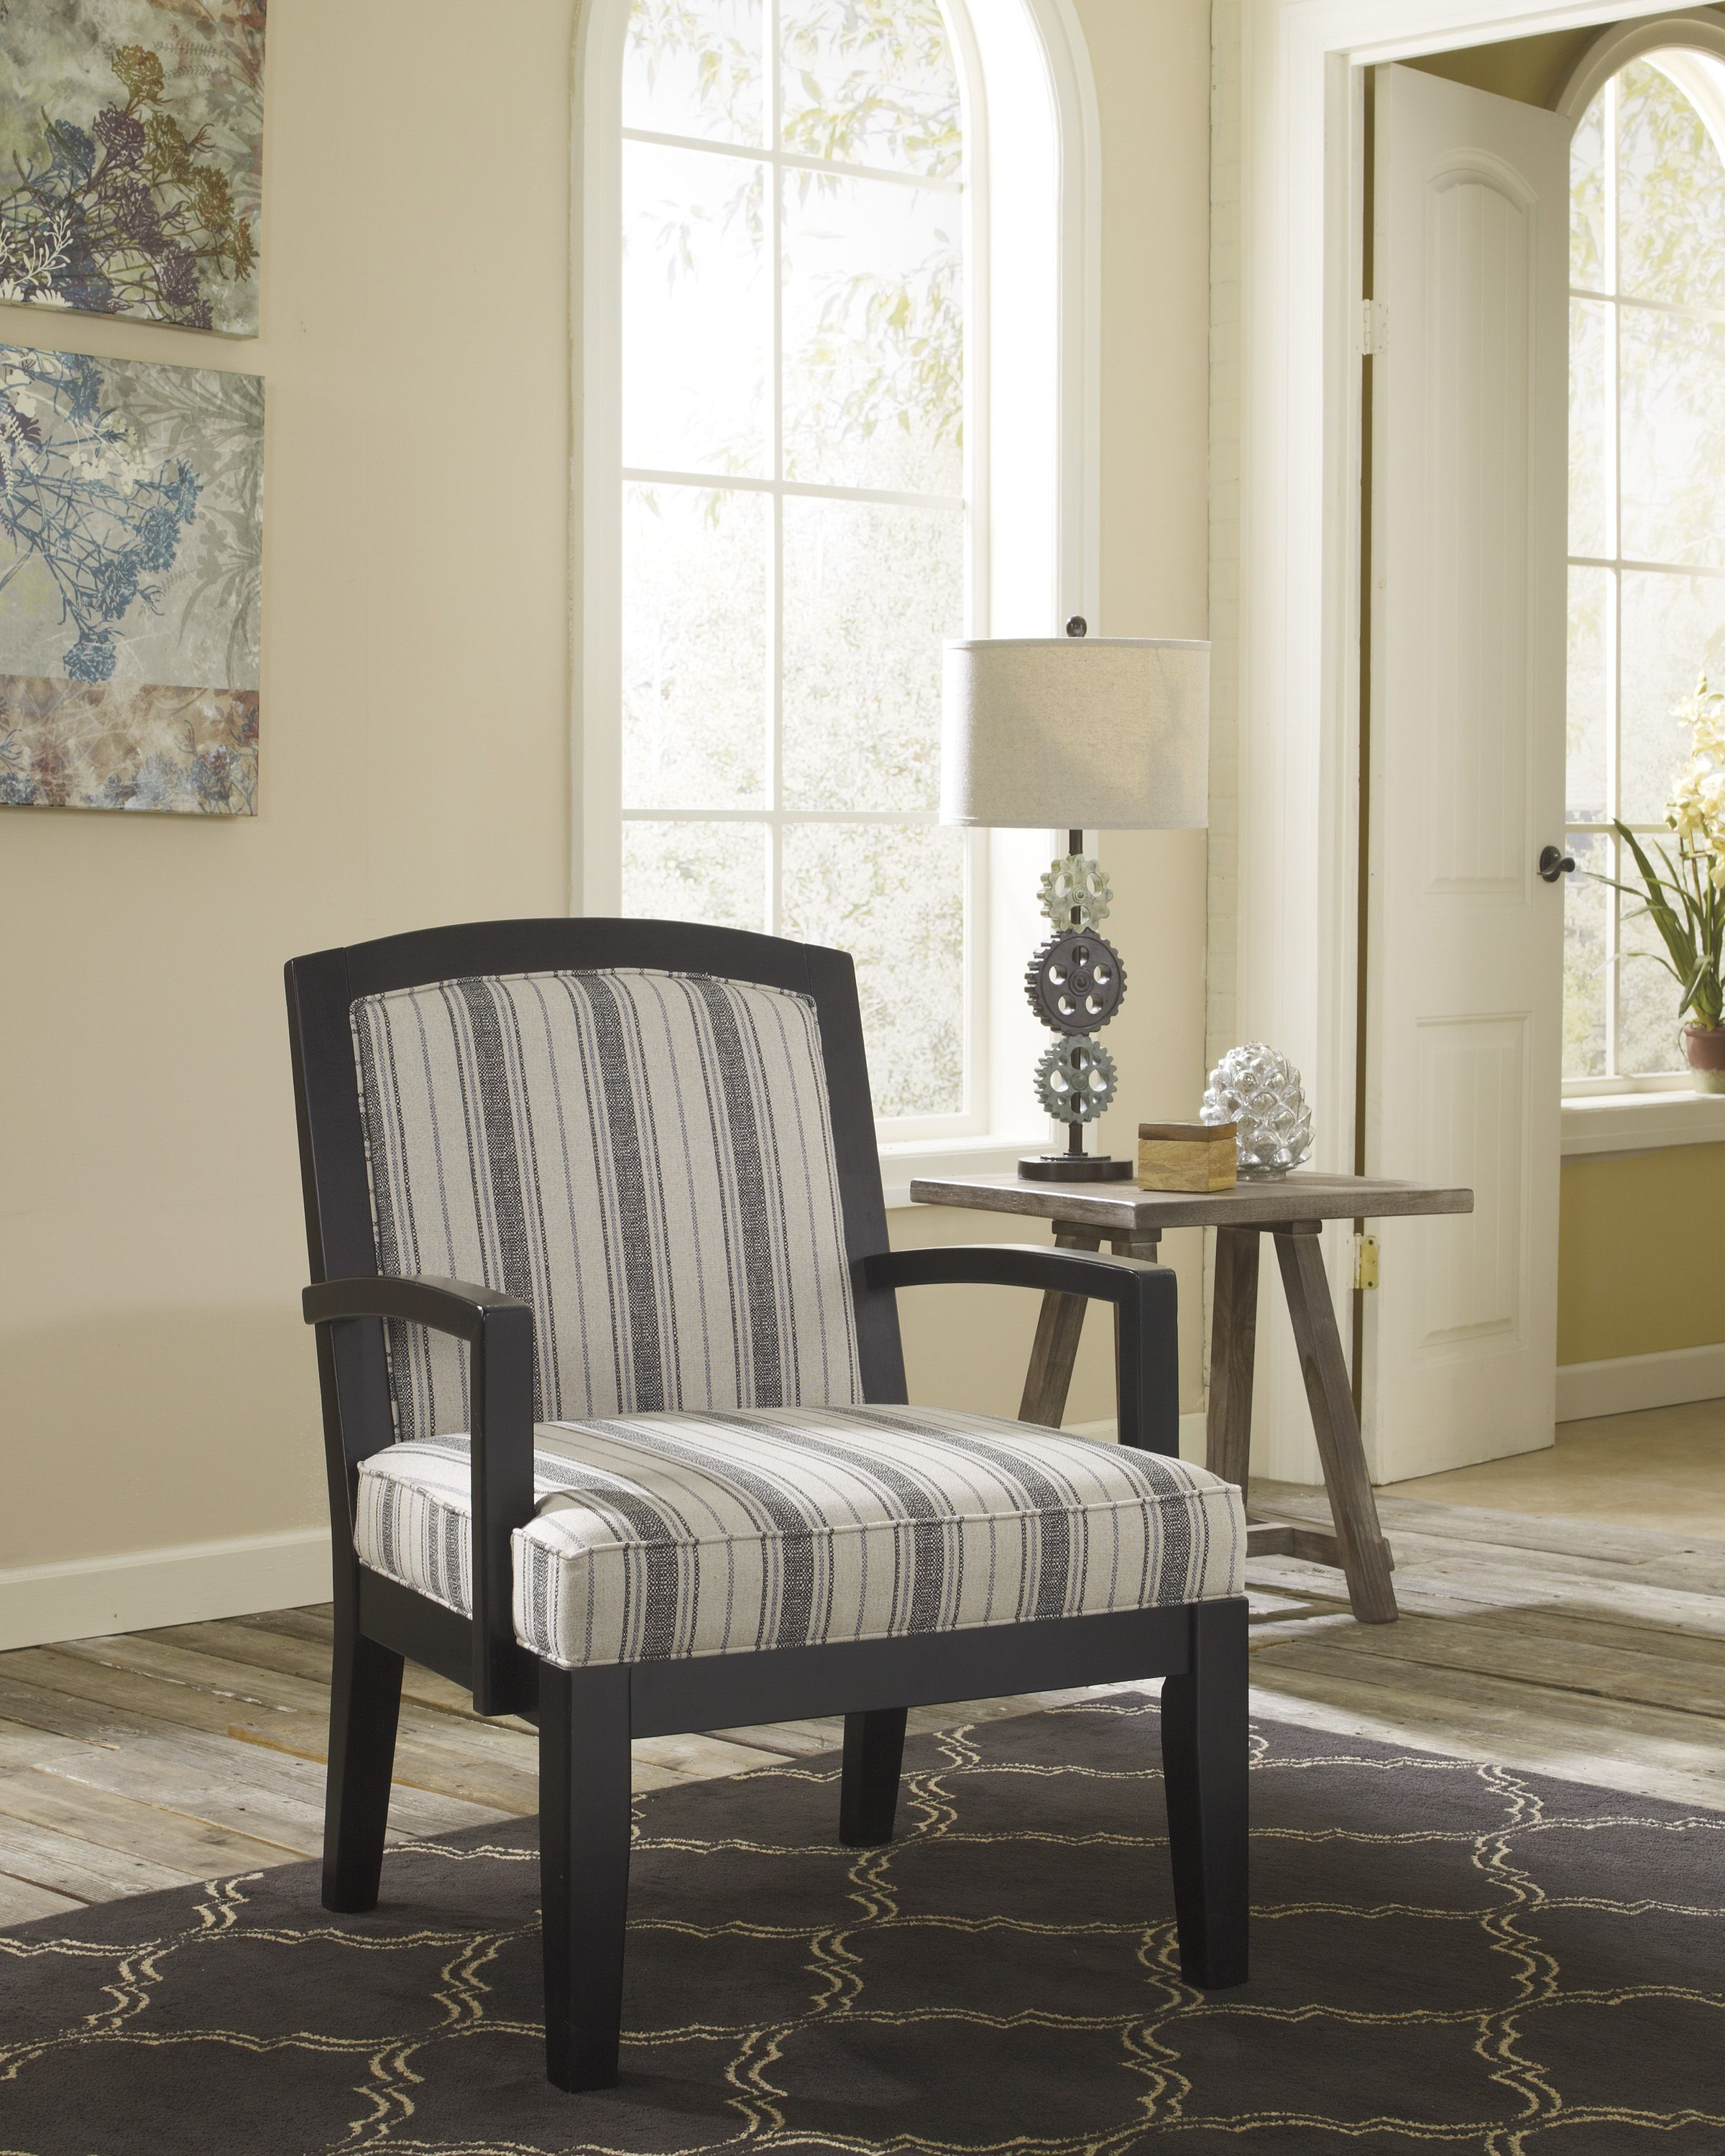 Ashley Furniture 166060 Alenya Showood Chair | Accent Chairs | Pinterest